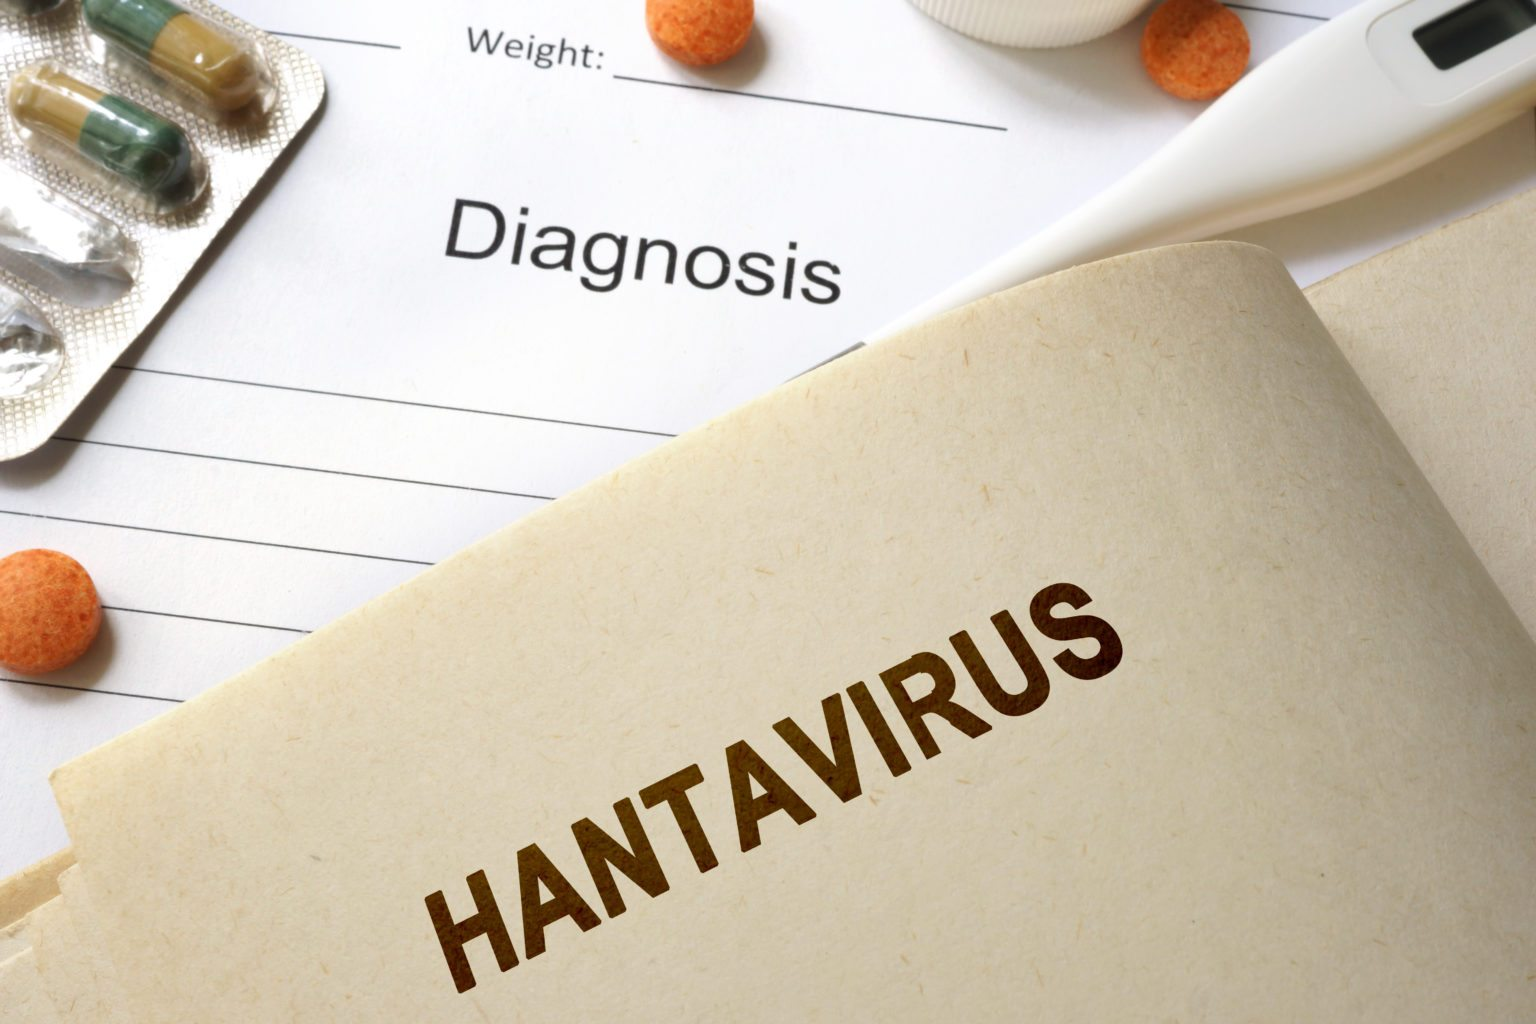 Man who died on bus in China tests positive for 'hantavirus'